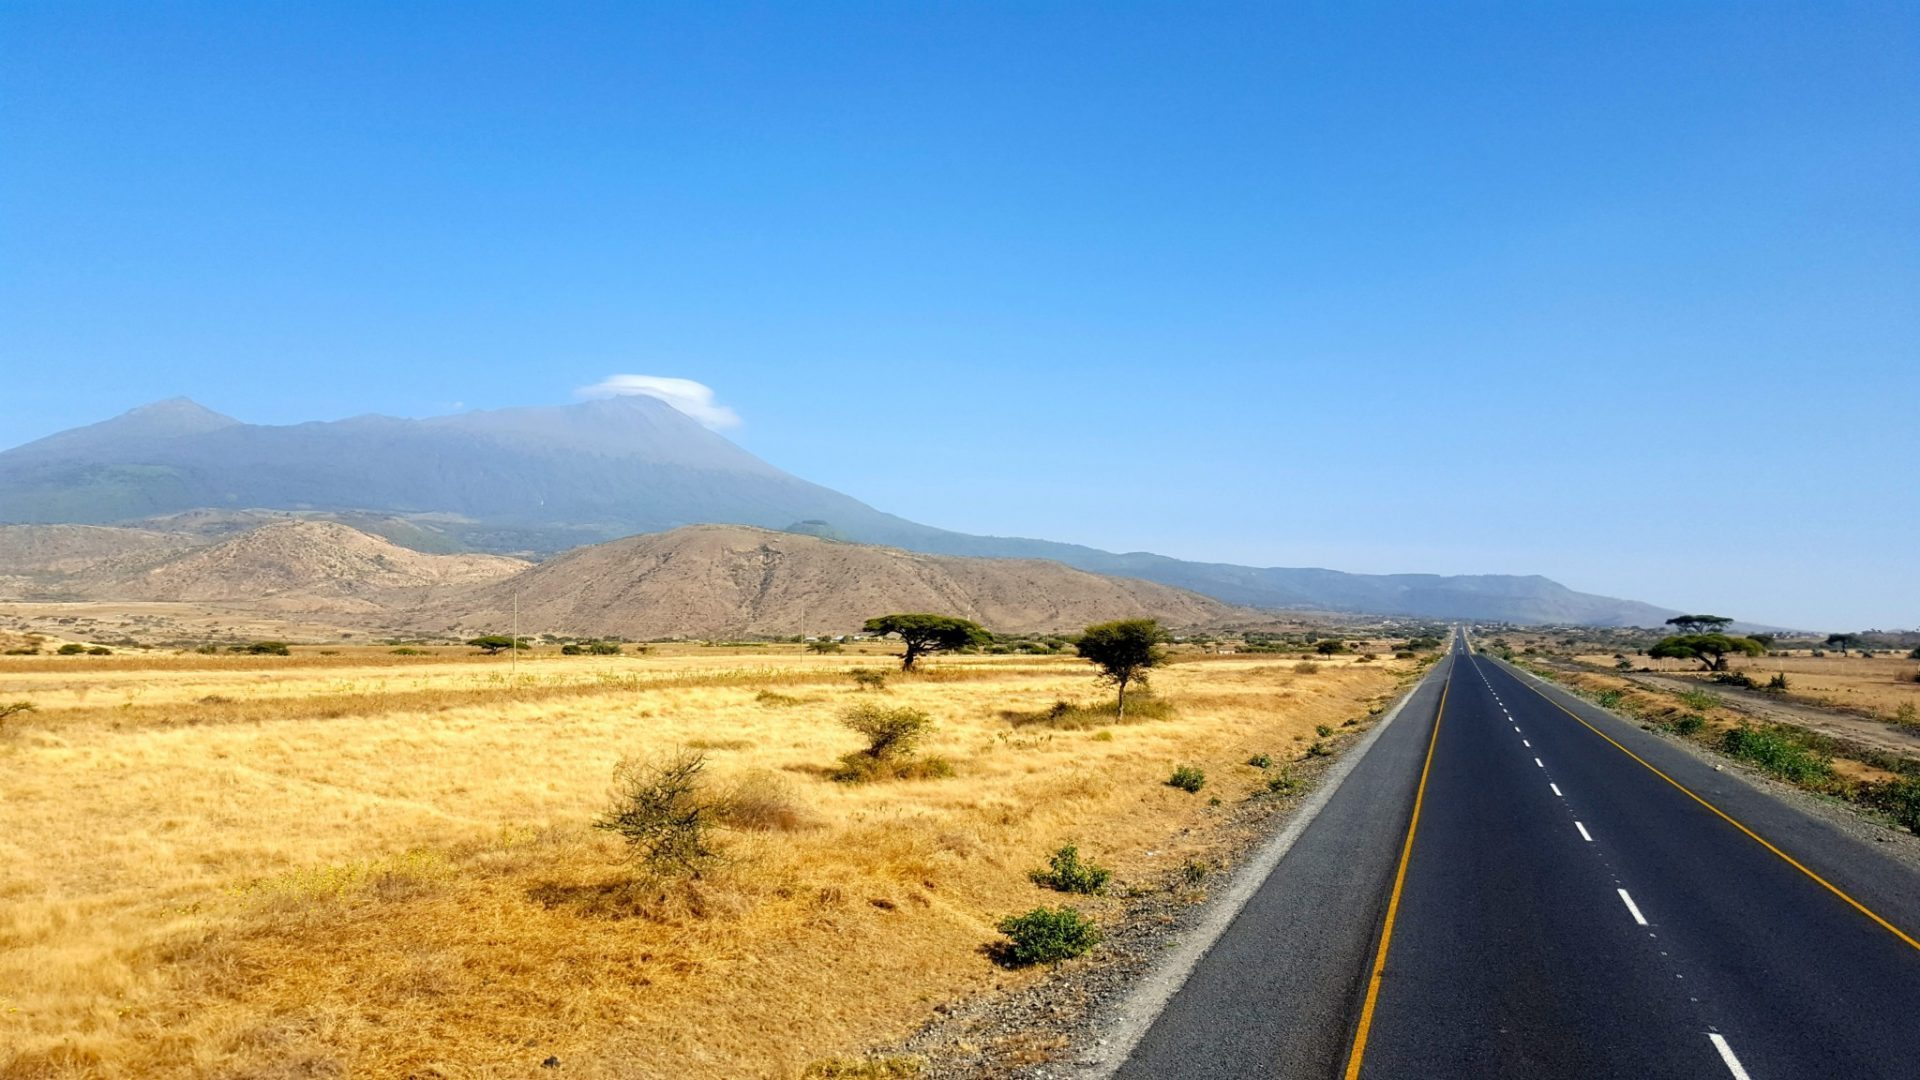 Road in Tanzania with Mount Meru in the background